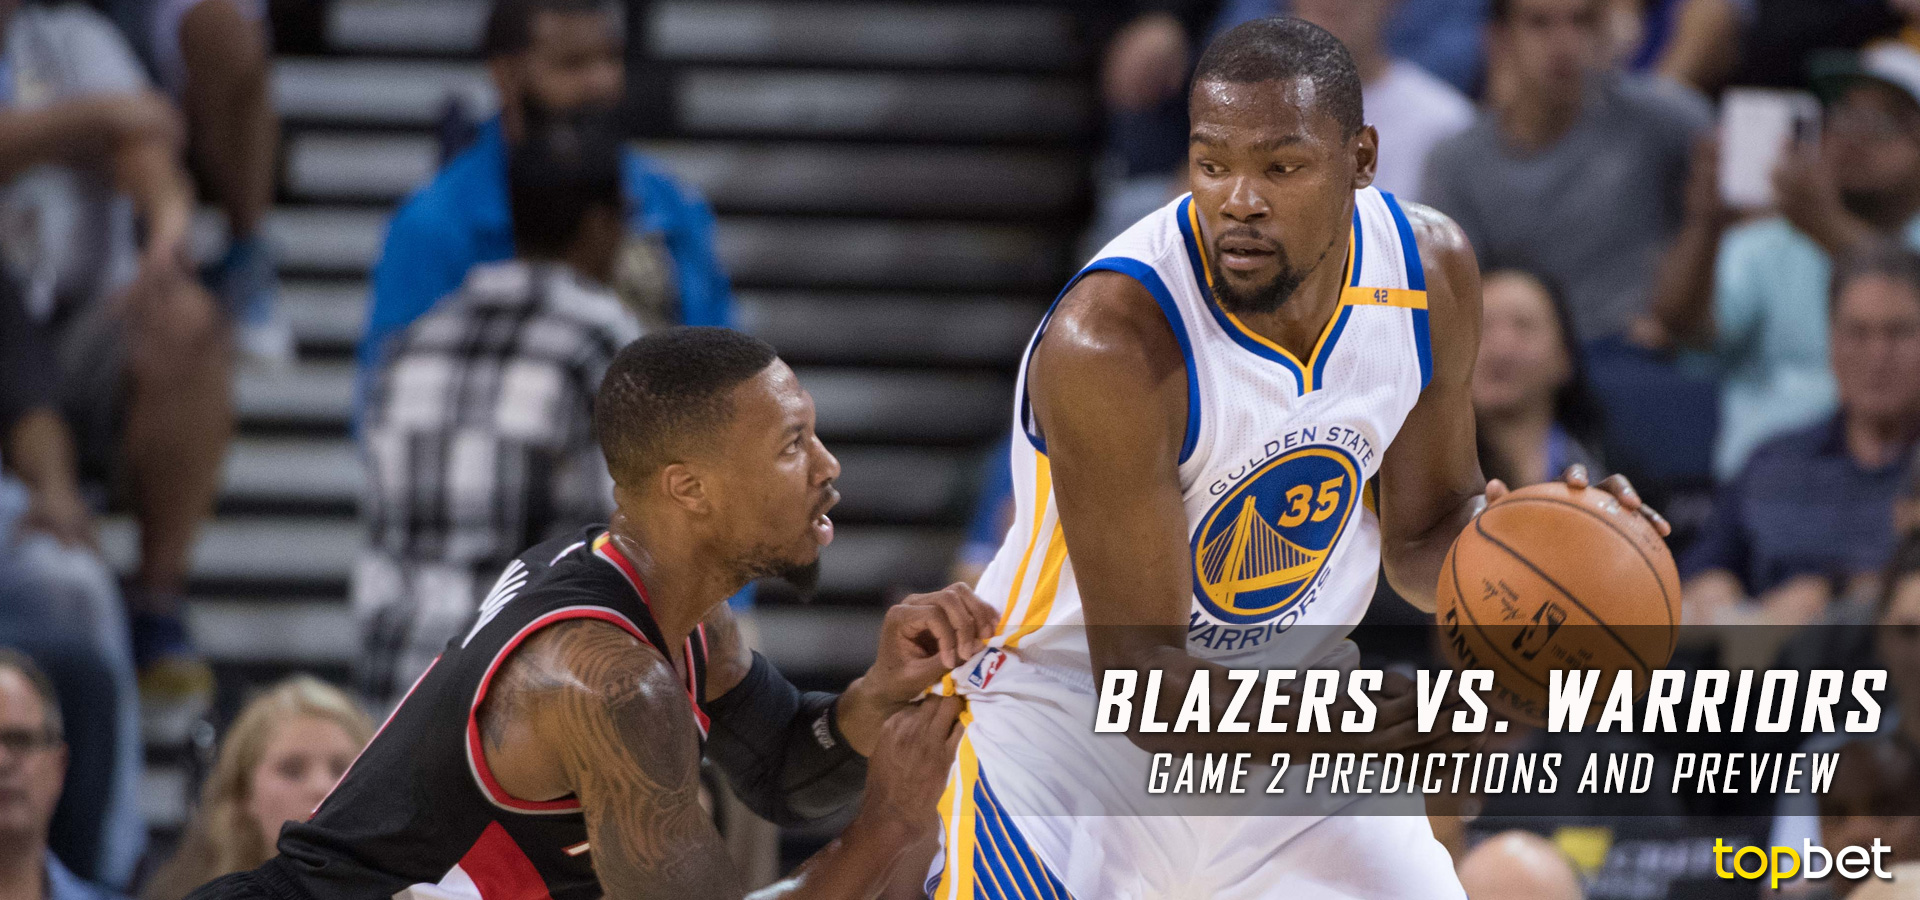 Cavaliers vs warriors game 7 predictions - Portland Trail Blazers Vs Golden State Warriors Predictions Picks And Preview 2017 Nba